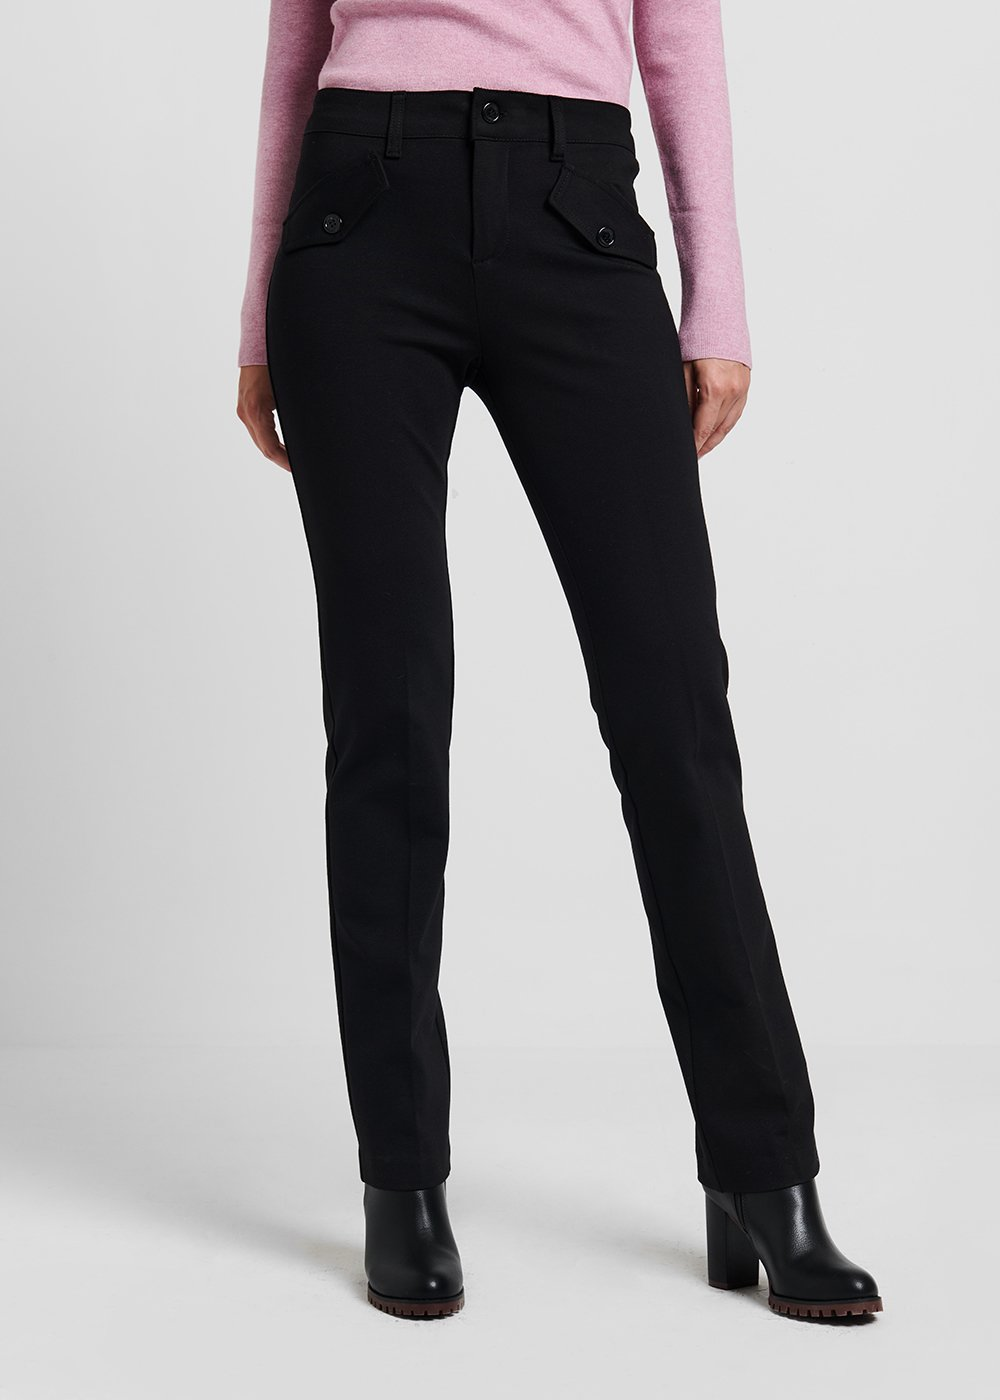 Carrie trekking trousers in milano stitch - Black - Woman